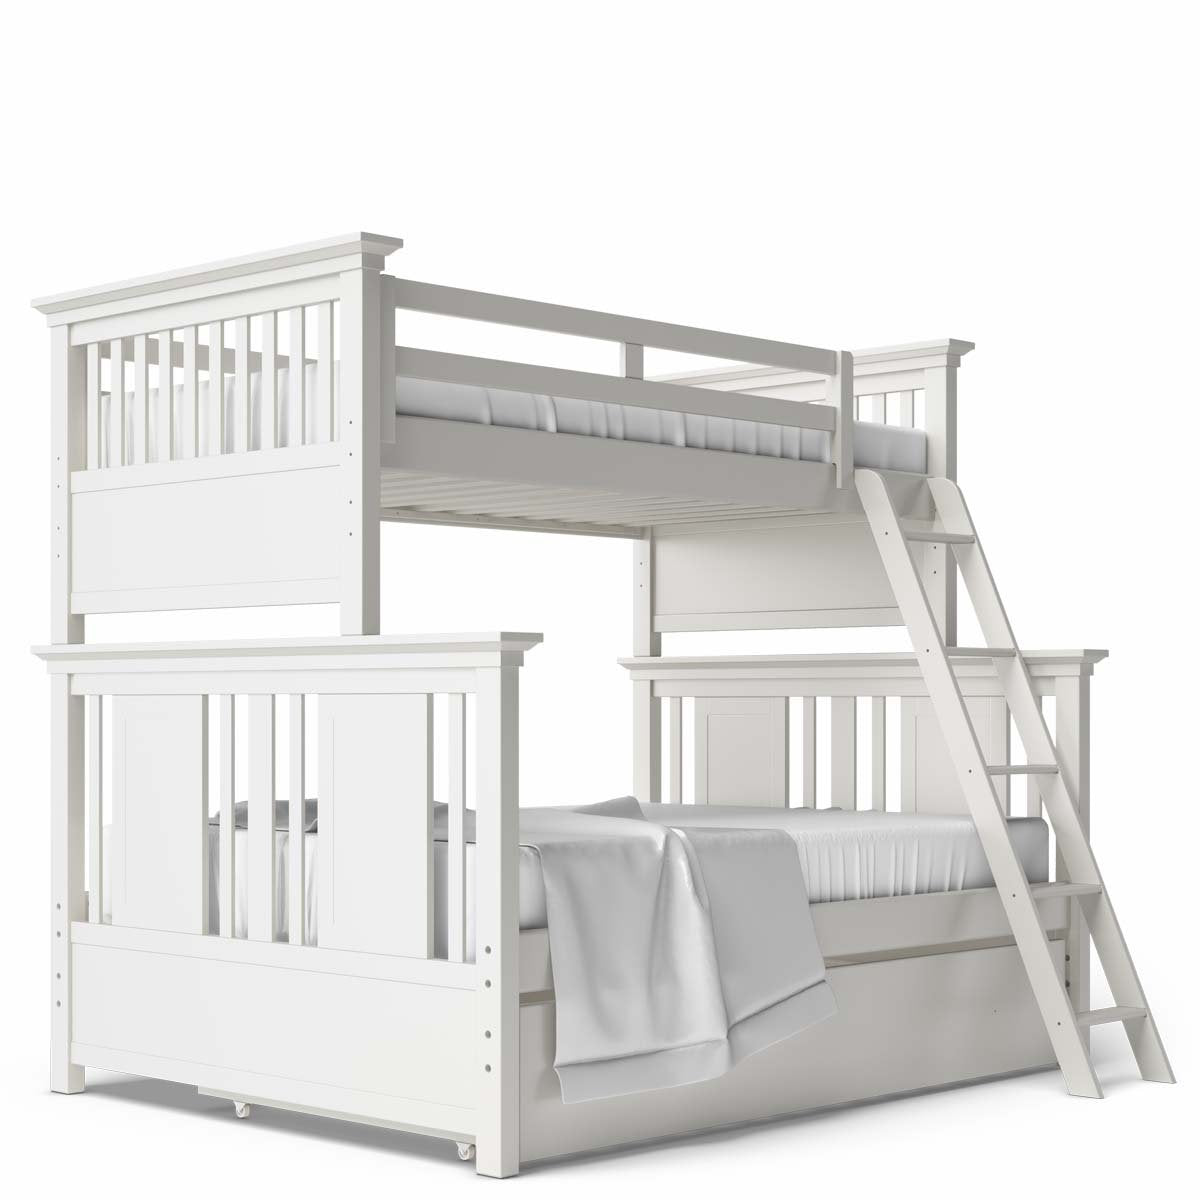 Karisma Twin/Full Bunk Bed